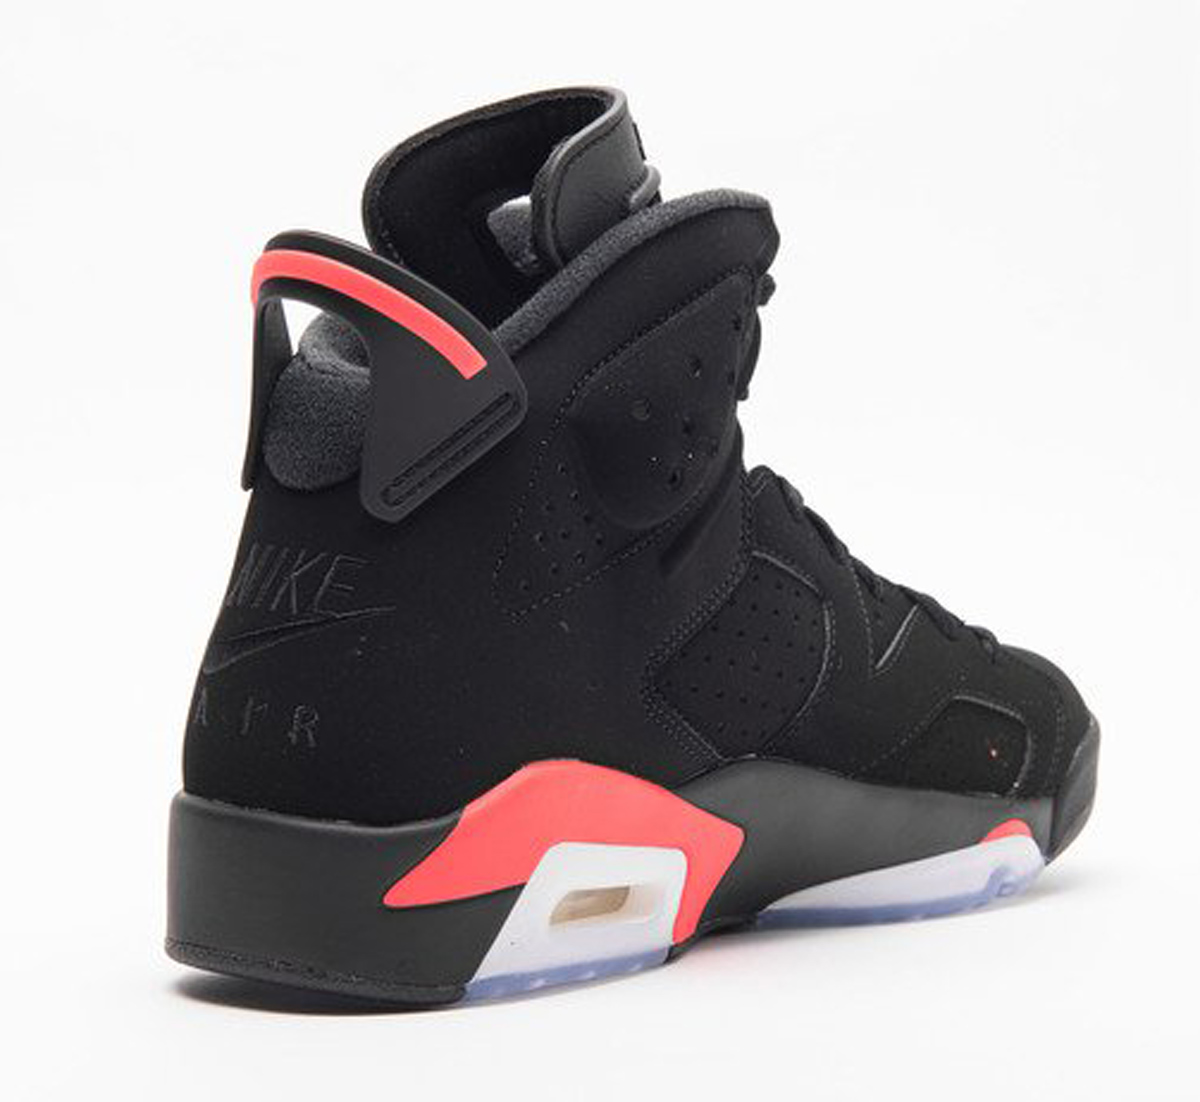 le dernier bef89 c1092 Our Best Look Yet at the Air Jordan 6 'Infrared' for 2019 ...